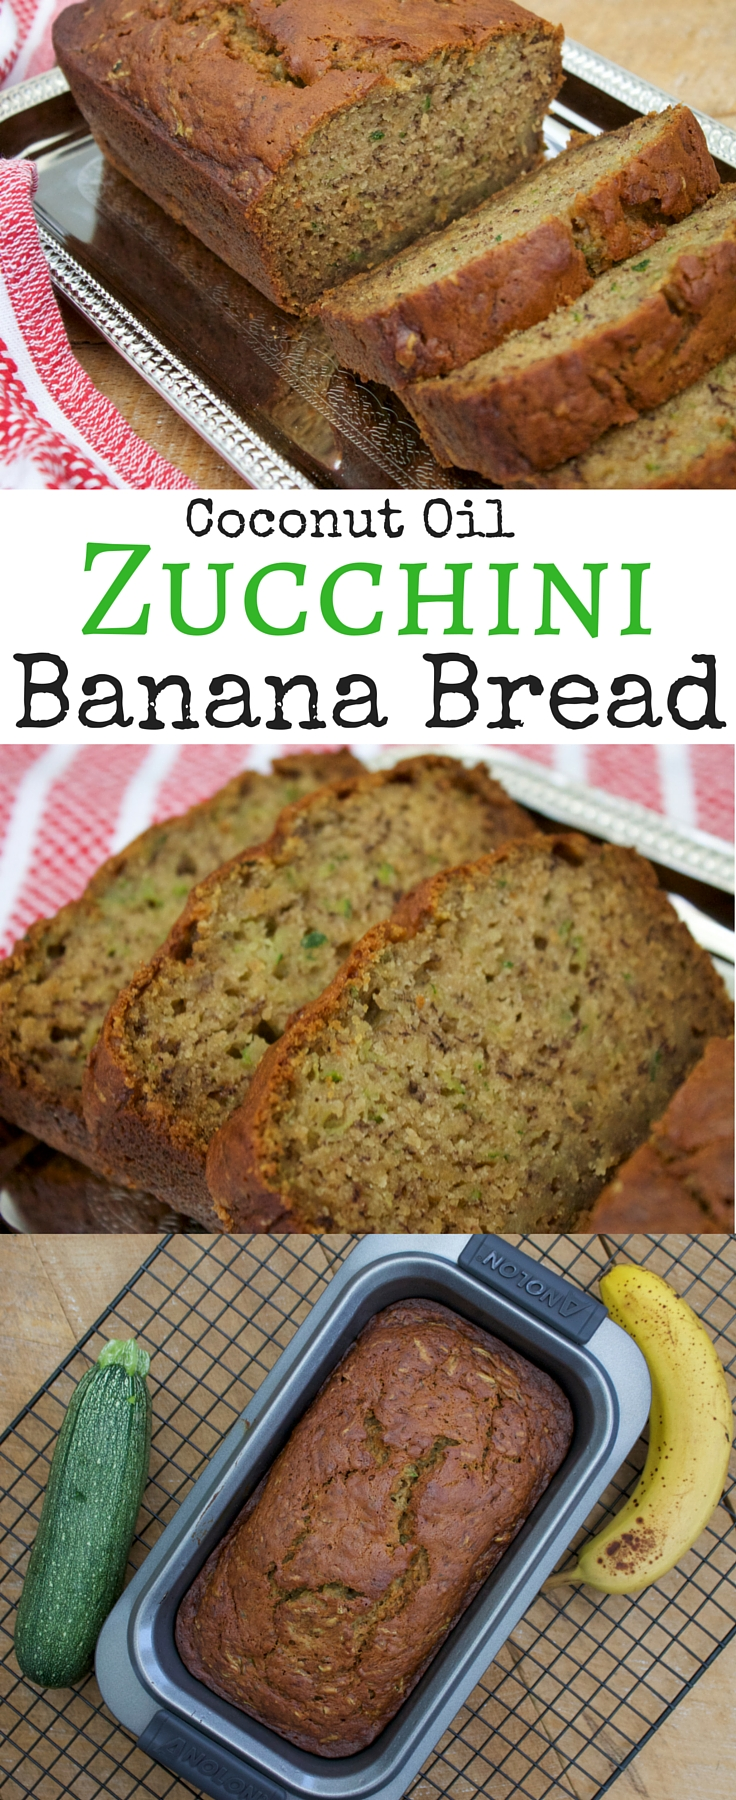 Zucchini Banana Bread Recipe with tips for making sure your bananas are ready every time!